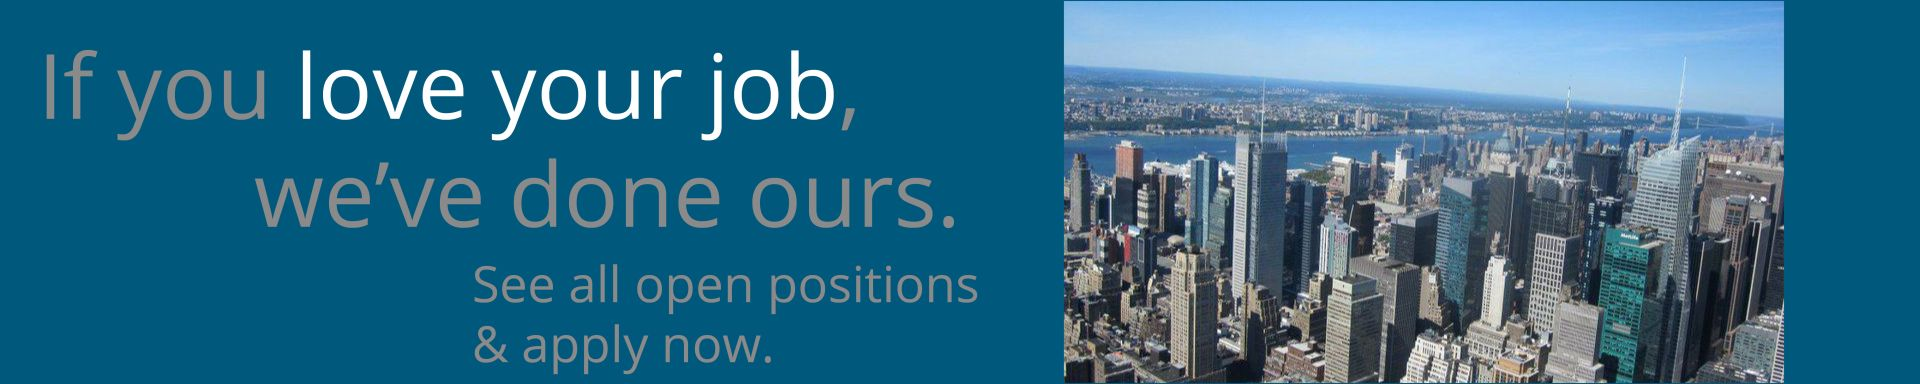 HeaderImage_loveyourjob_nyc